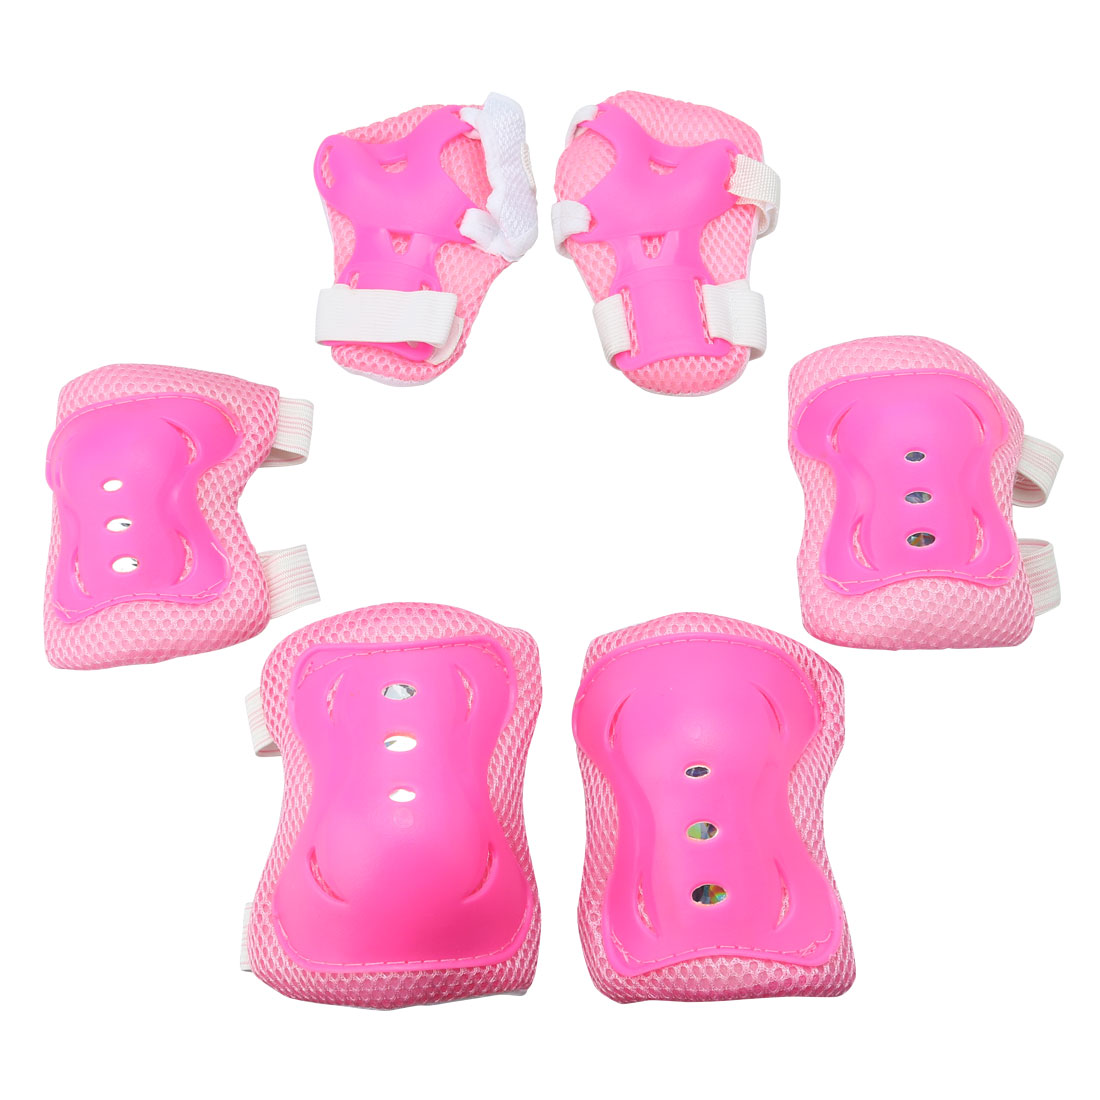 Kids Skating Knee Palm Elbow Wrist Guard Support Brace Pad Pink 6 in 1 Set